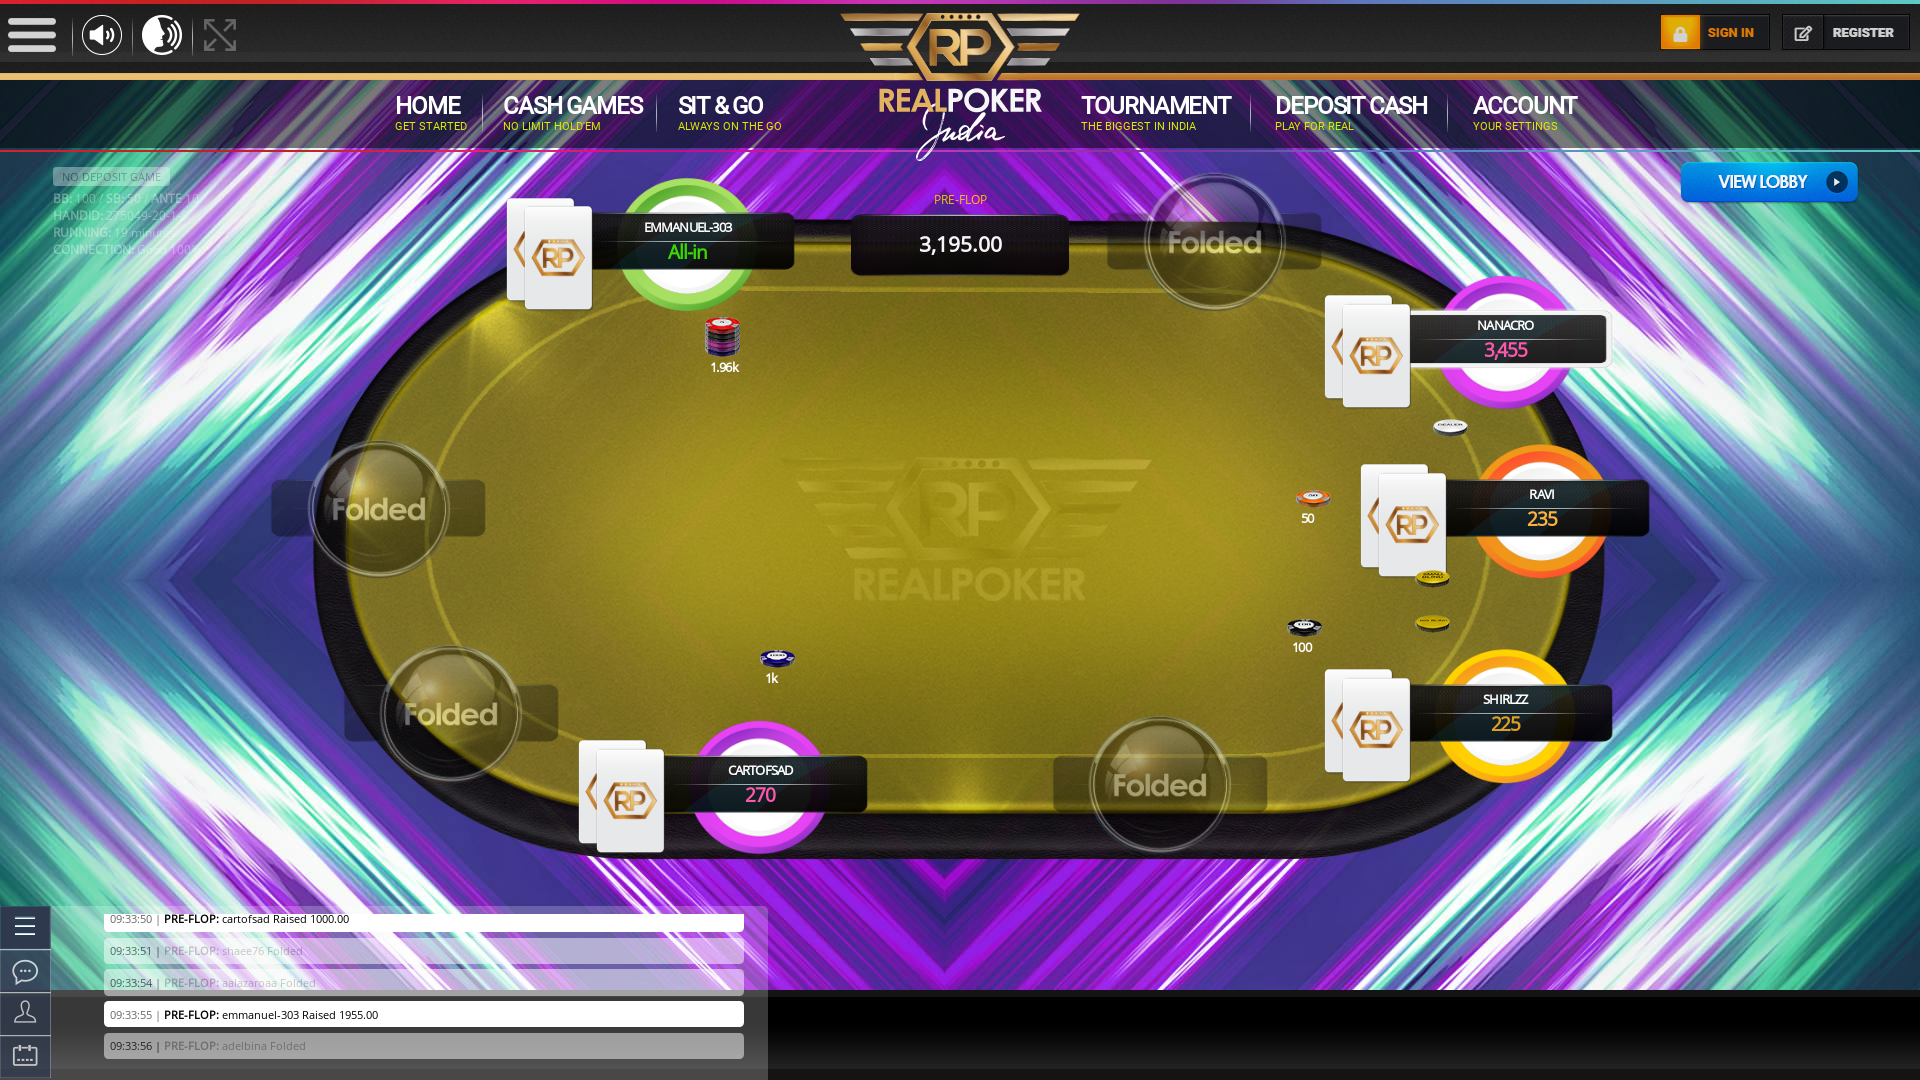 Real poker 10 player table in the 19th minute of the match